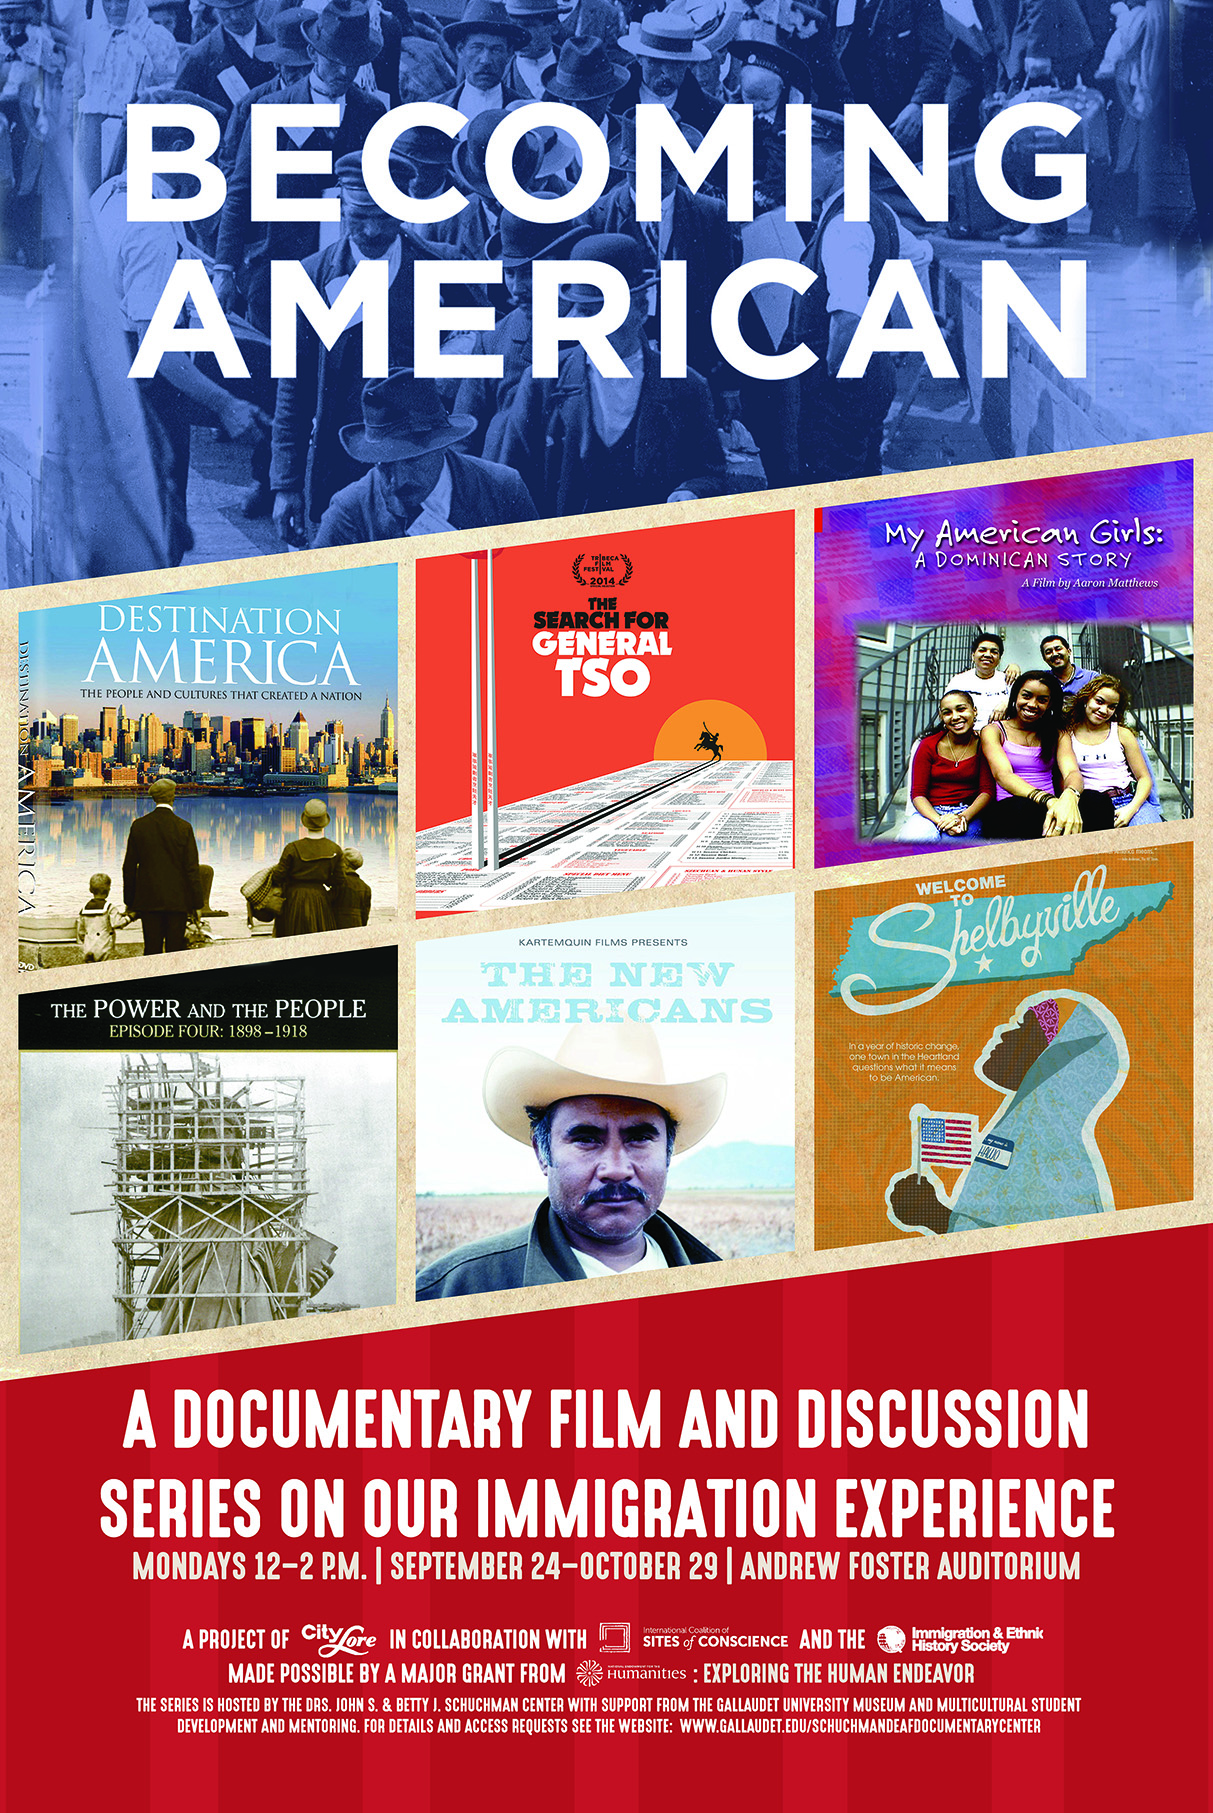 Becoming American campaign poster. It has several images of several movies, have information and dates/times of screenings.